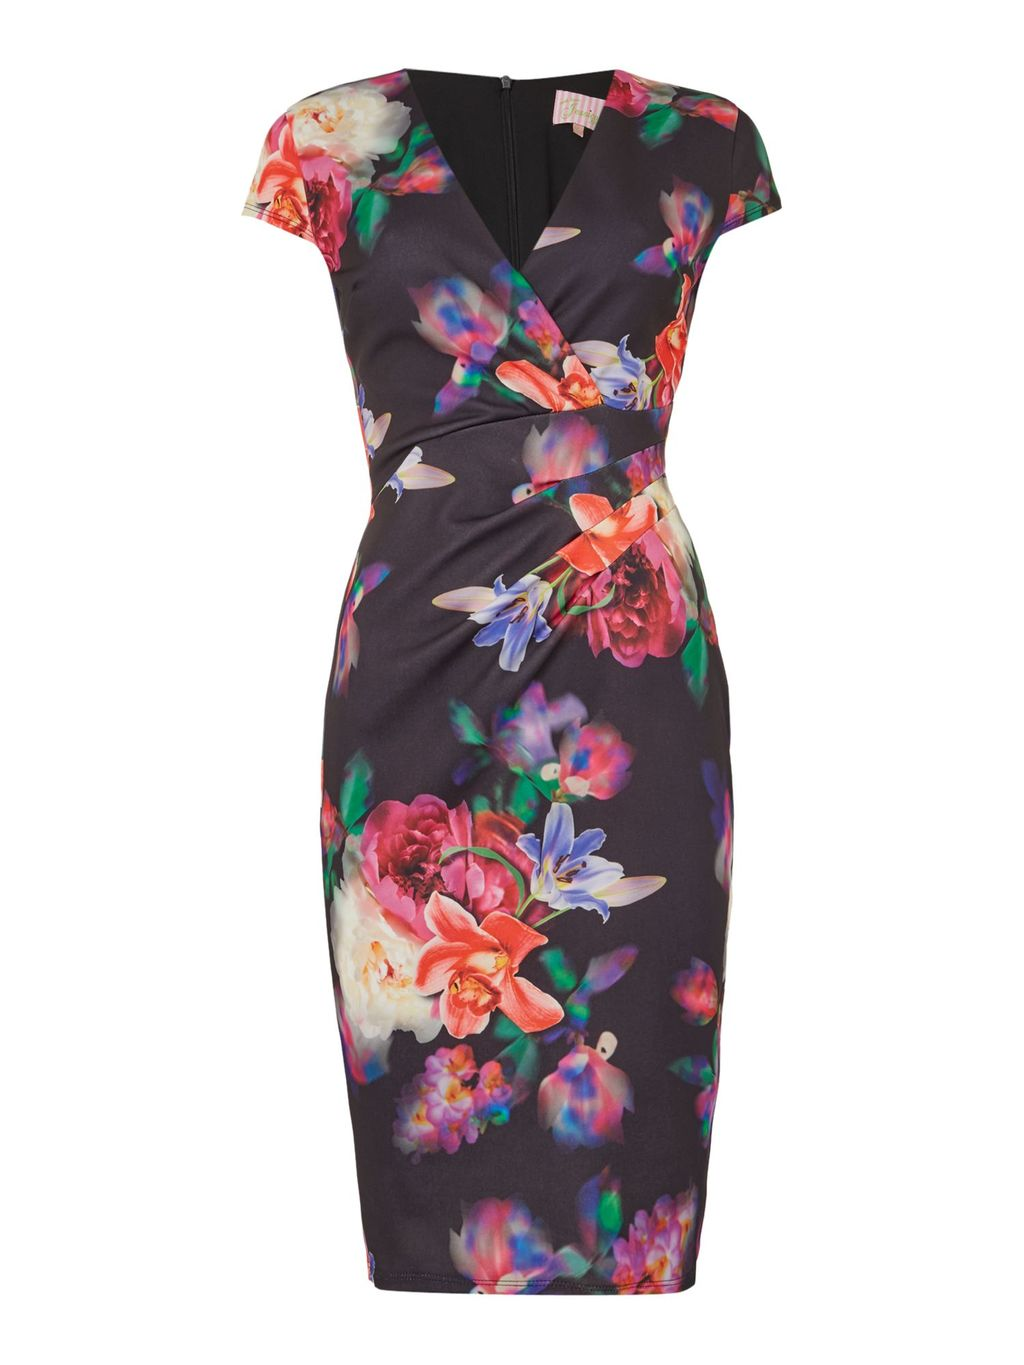 Sleeveless V Neck Floral Bodycon Dress, Multi Coloured - style: shift; neckline: v-neck; fit: tight; secondary colour: magenta; predominant colour: black; length: on the knee; fibres: polyester/polyamide - stretch; occasions: occasion; sleeve length: short sleeve; sleeve style: standard; pattern type: fabric; pattern size: standard; pattern: florals; texture group: jersey - stretchy/drapey; multicoloured: multicoloured; season: s/s 2016; wardrobe: event